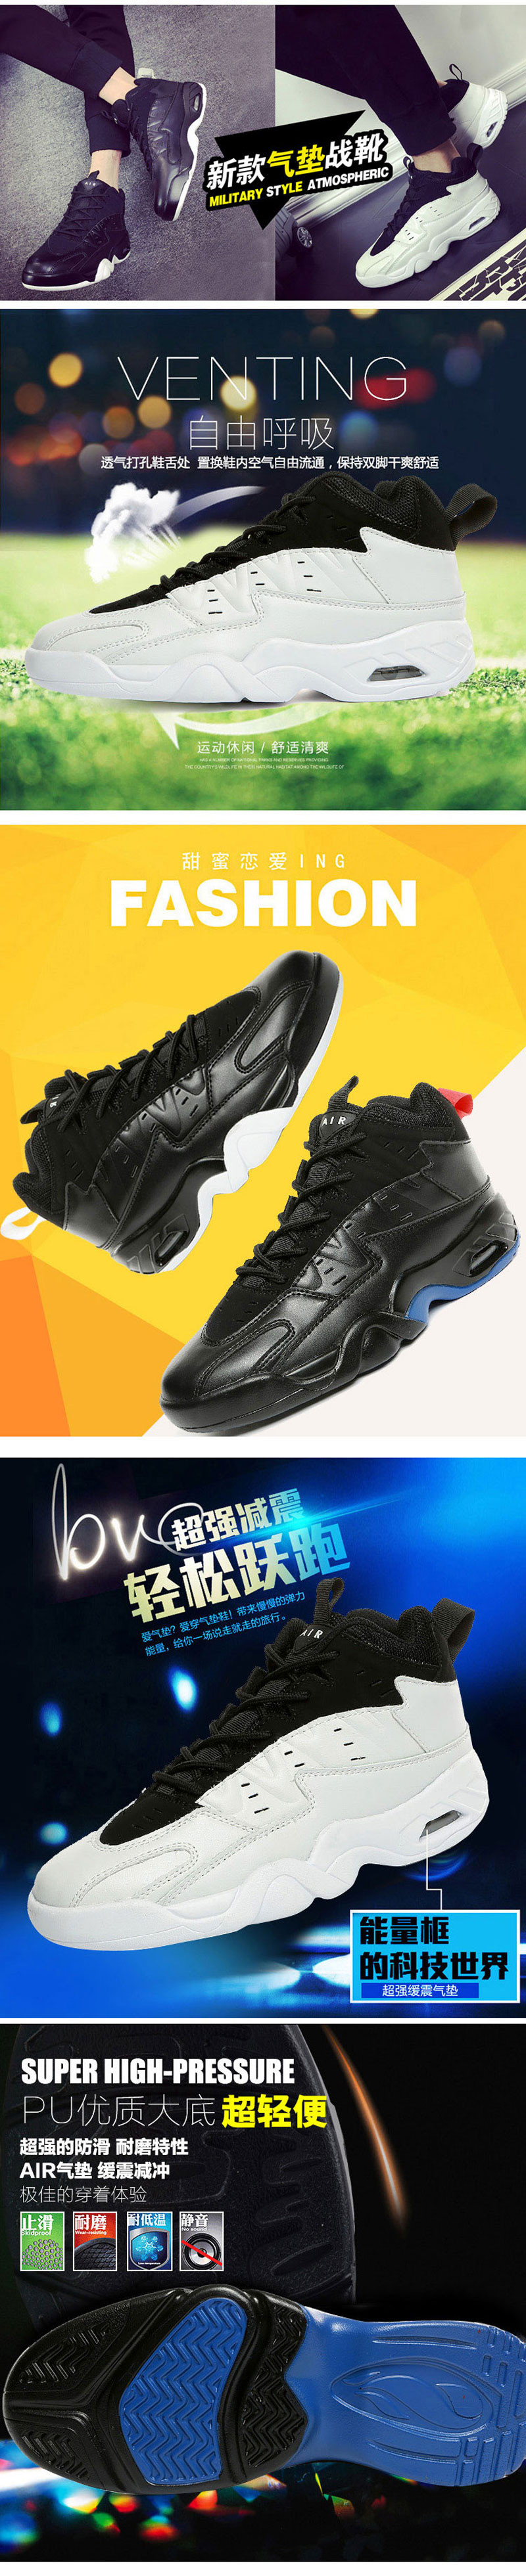 4ce3b3fc94e0 Curry Shoe Stephen Curry Shoe Curry 2 3 Shoe 2016 Men Krasovki Casual Basket  Trainers Male Shoe Boty Gumshoe Tenni Valentine x25USD 52.30 pair